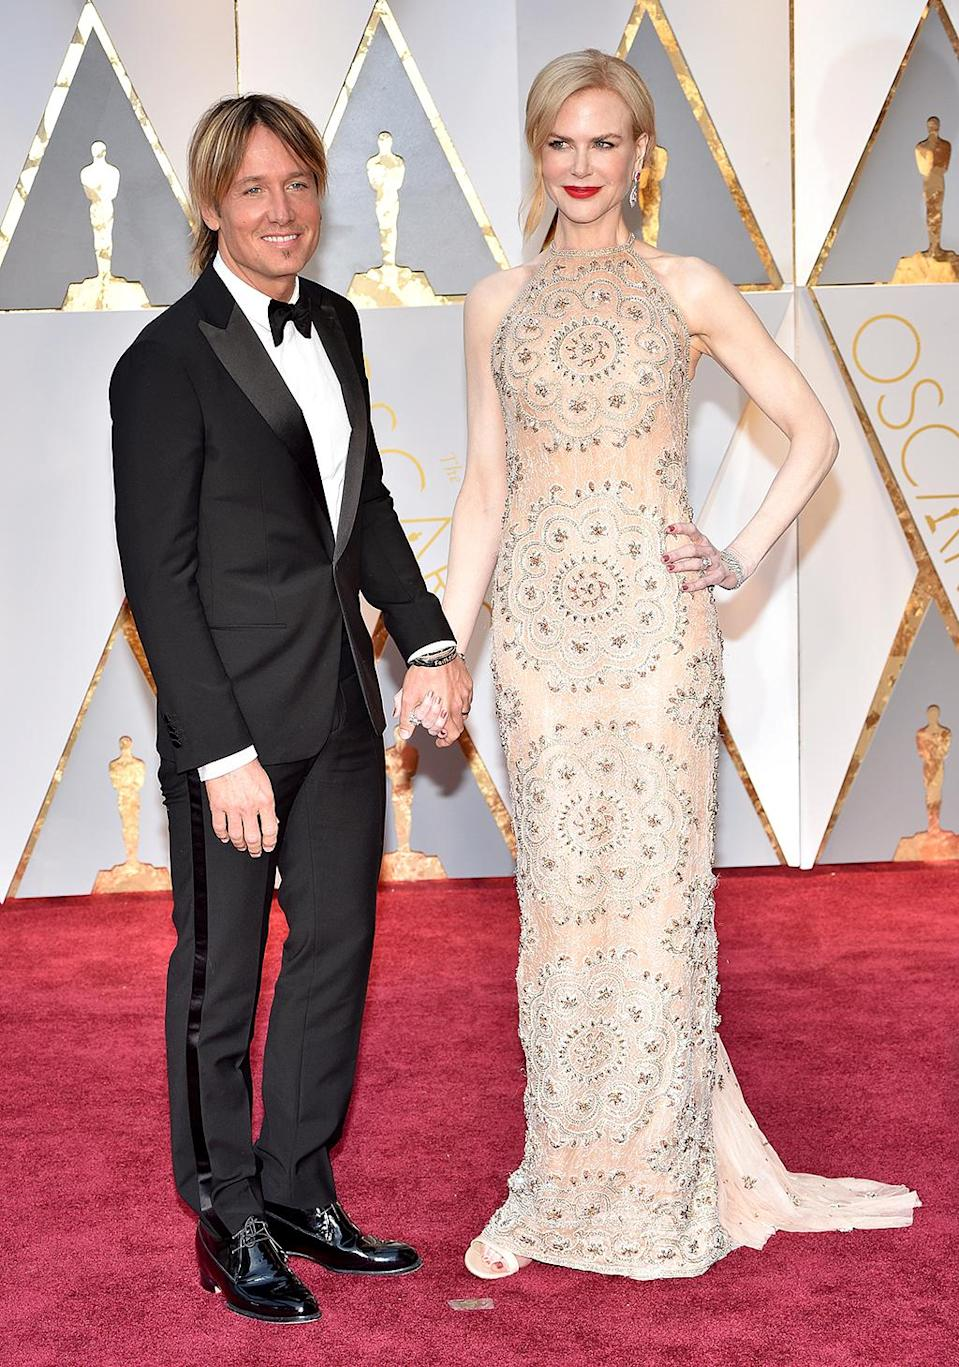 <p>Keith Urban and Nicole Kidman attend the 89th Annual Academy Awards at Hollywood & Highland Center on February 26, 2017 in Hollywood, California. (Photo by Kevin Mazur/Getty Images) </p>